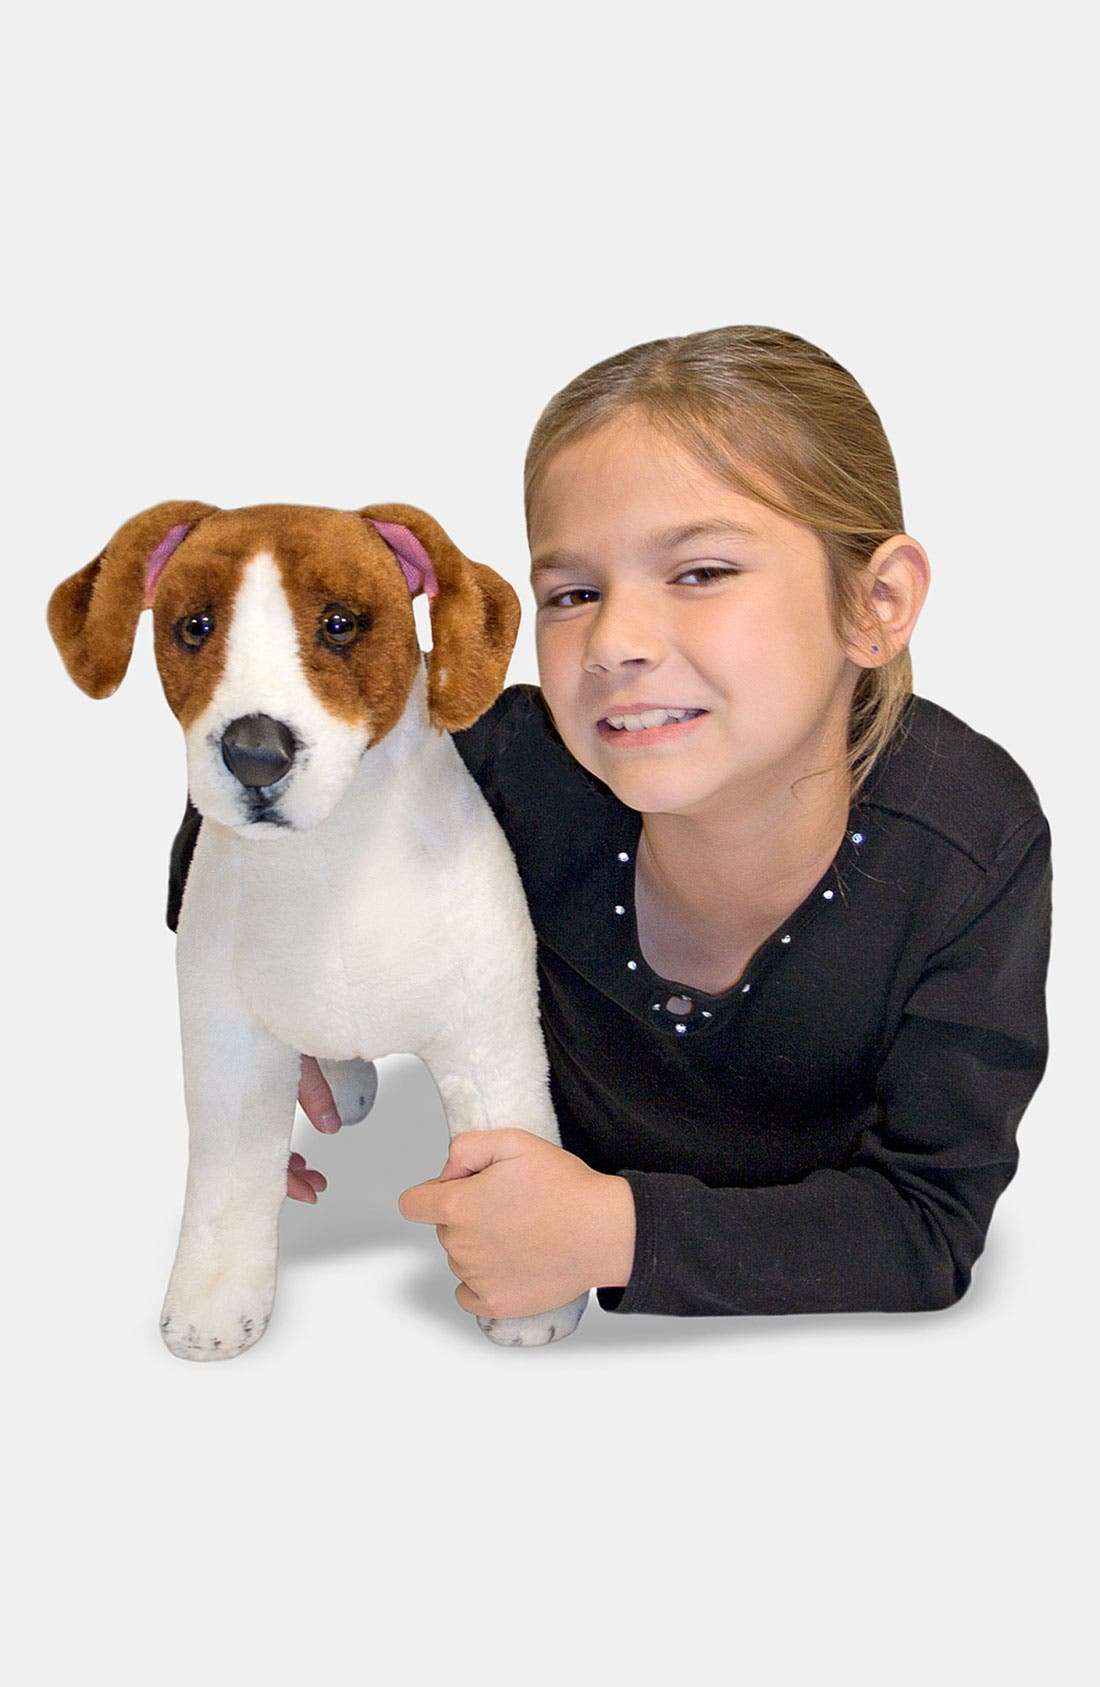 Alternate Image 1 Selected - Melissa & Doug Oversized Jack Russell Terrier